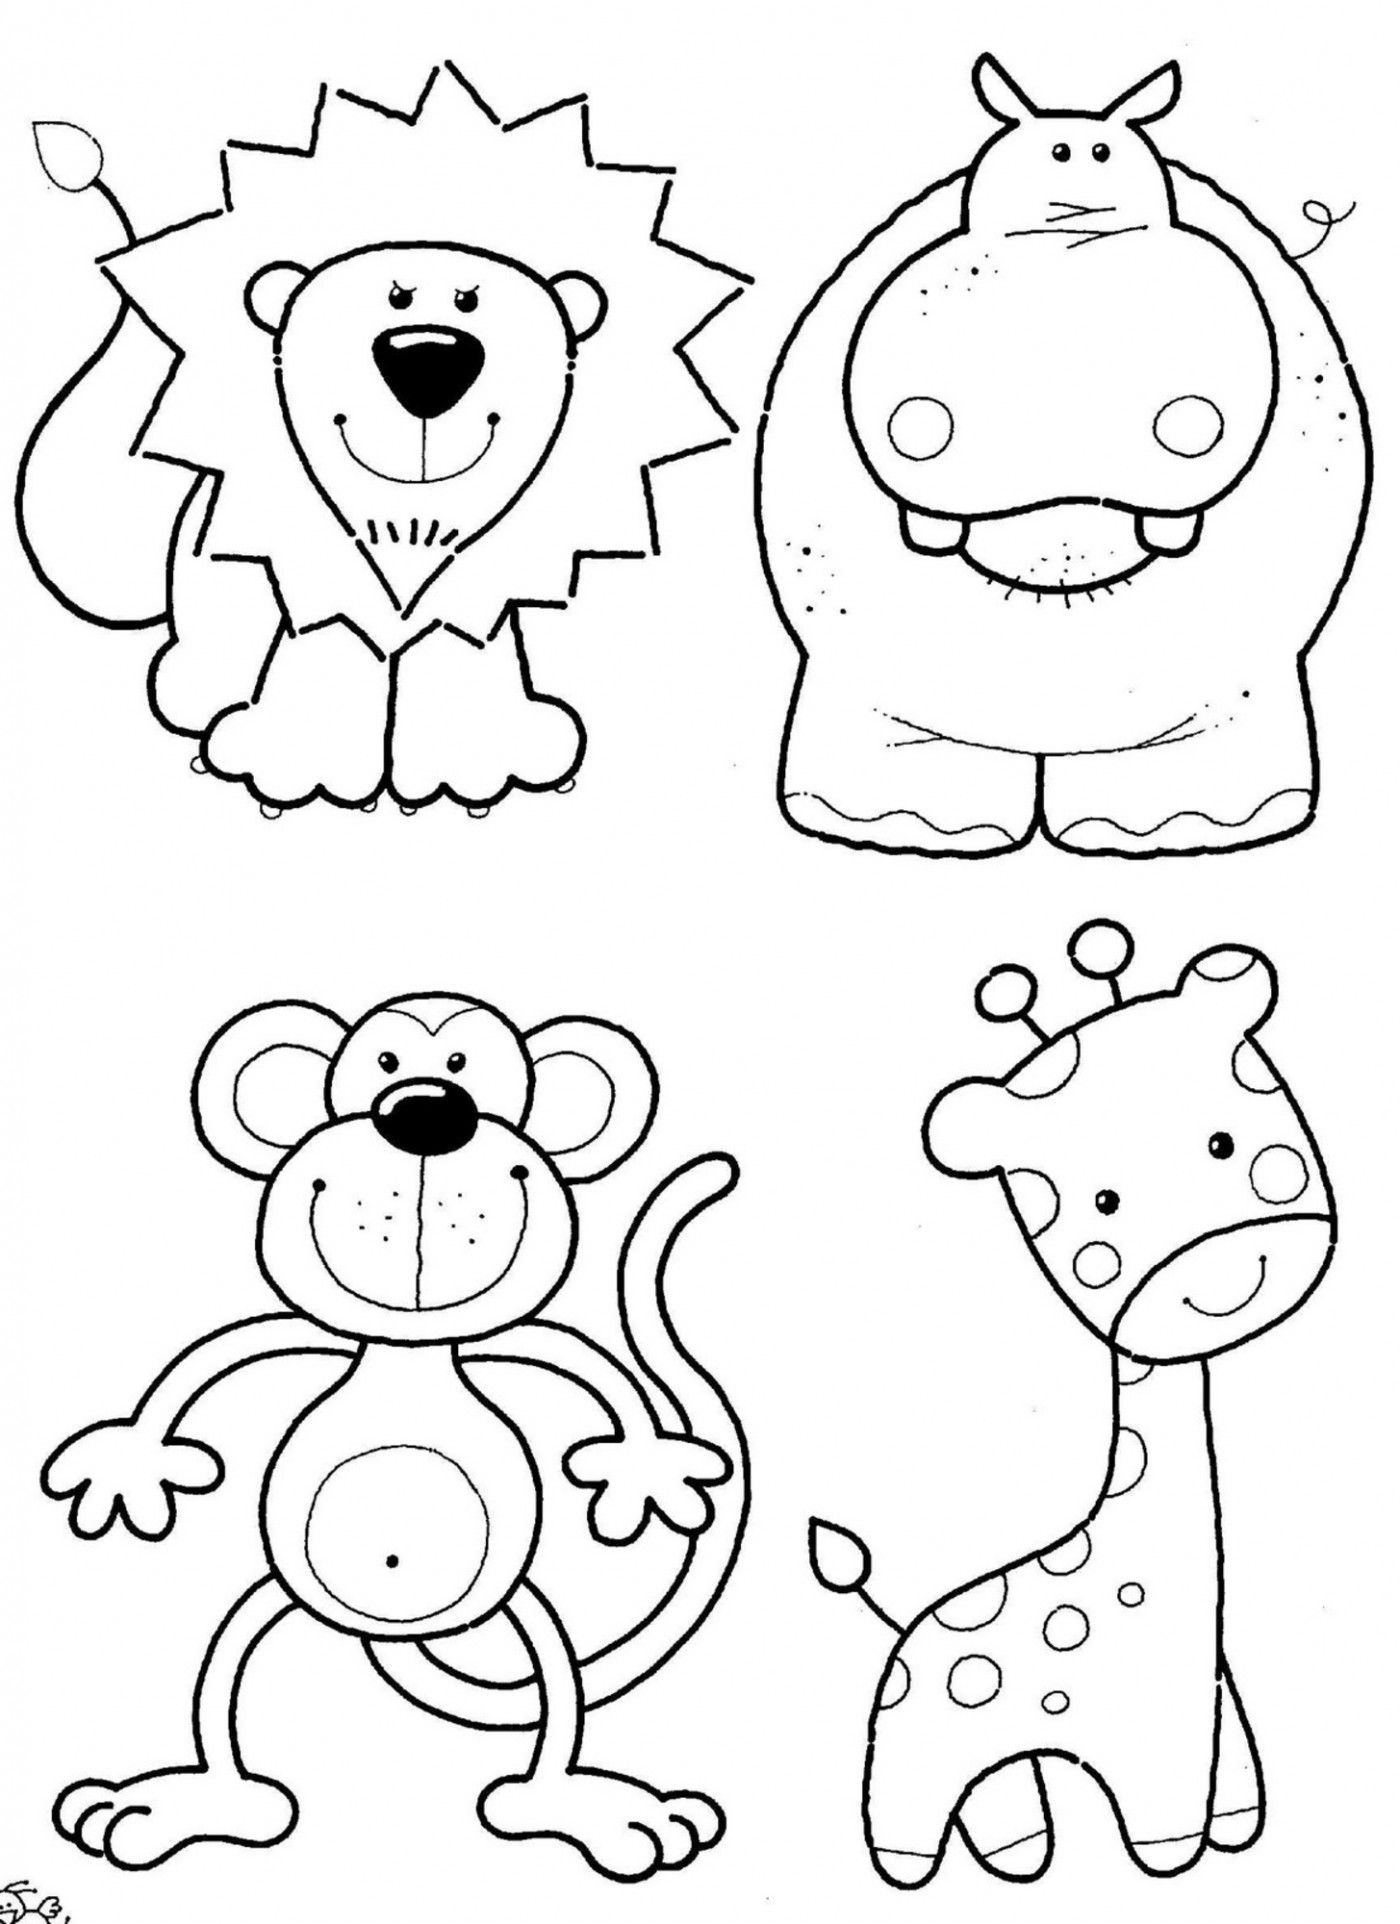 Animal Coloring Pages 14 Coloring Kids Zoo Animal Coloring Pages Animal Coloring Pages Animal Coloring Books